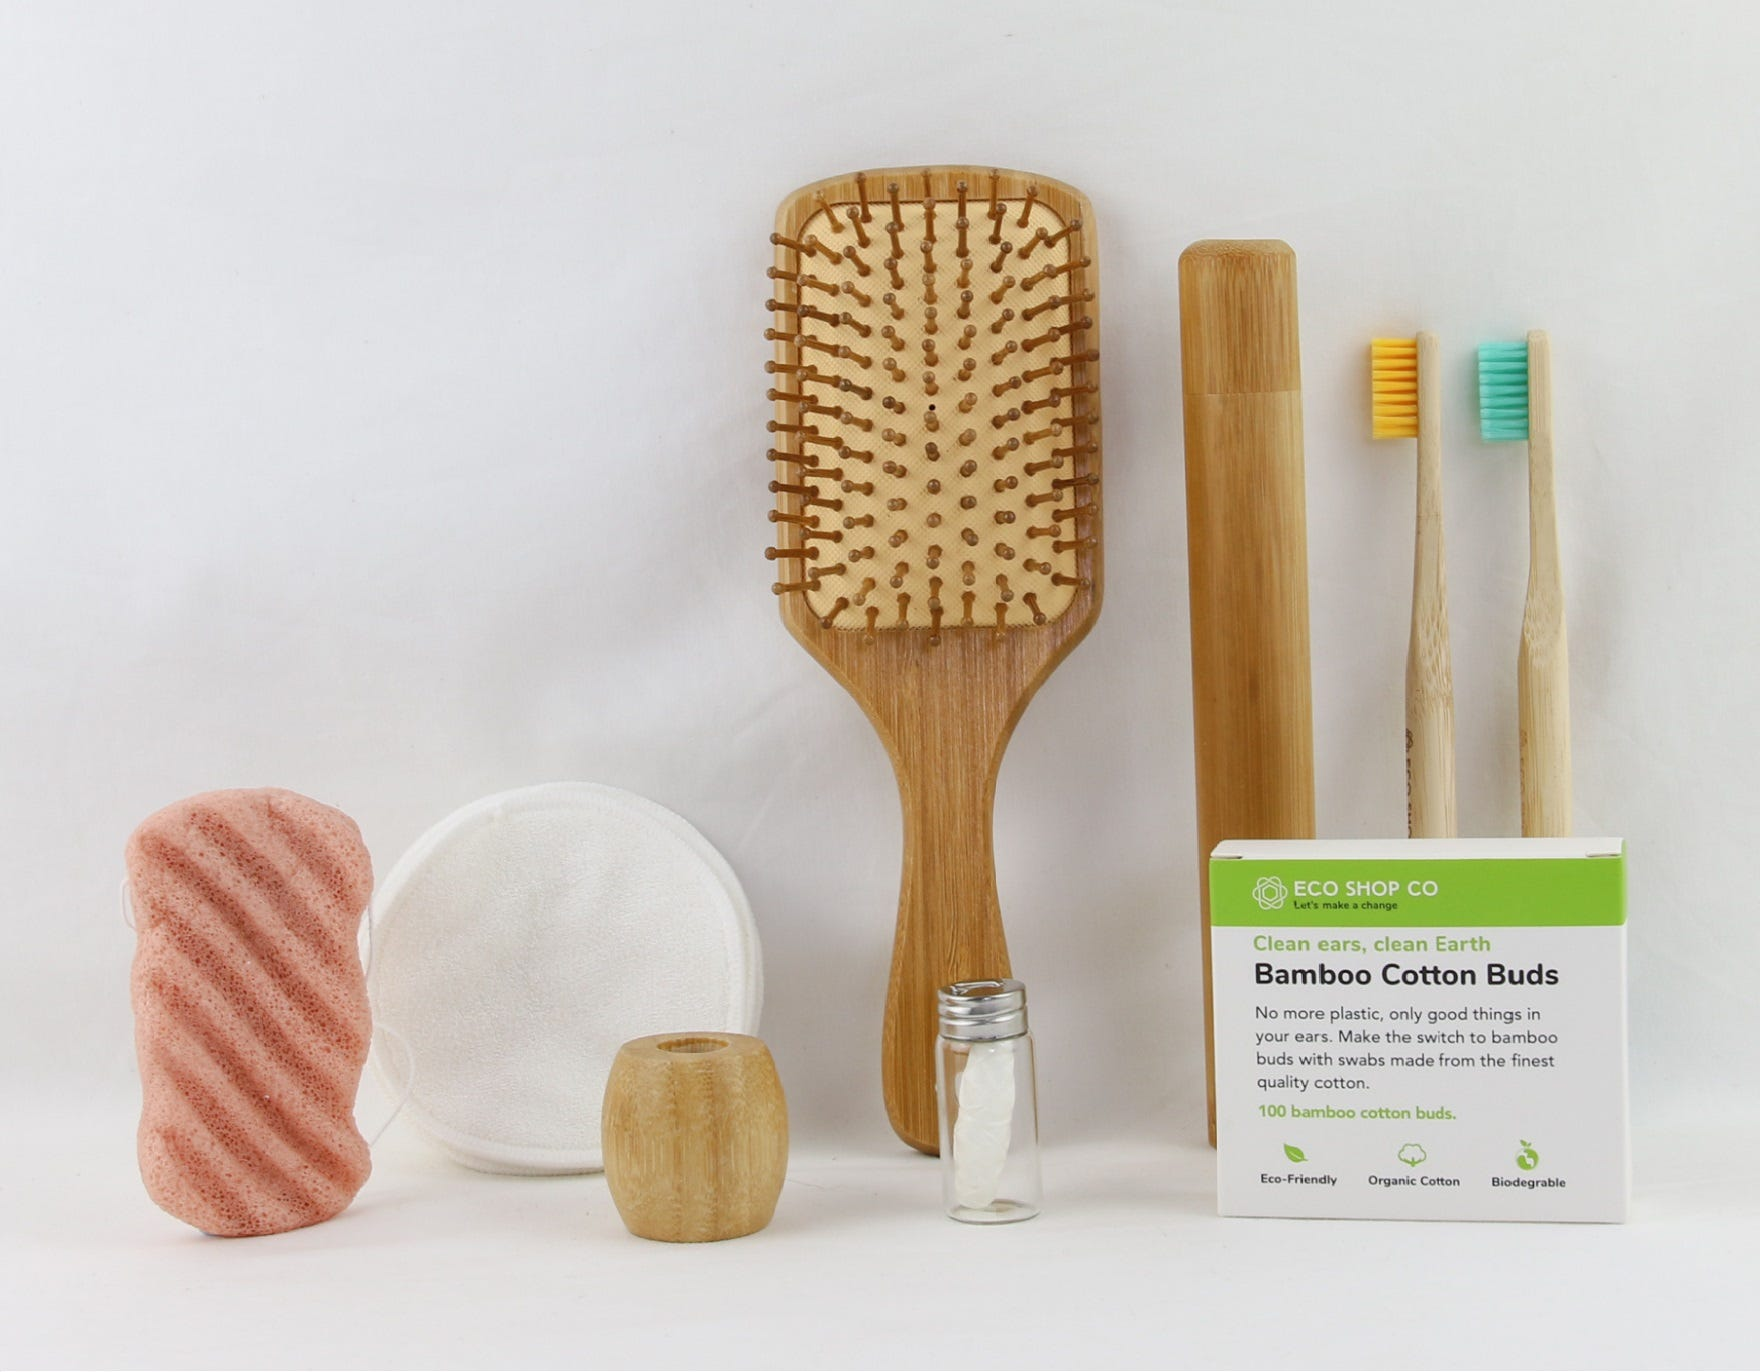 Ekoroo Products Lined Up